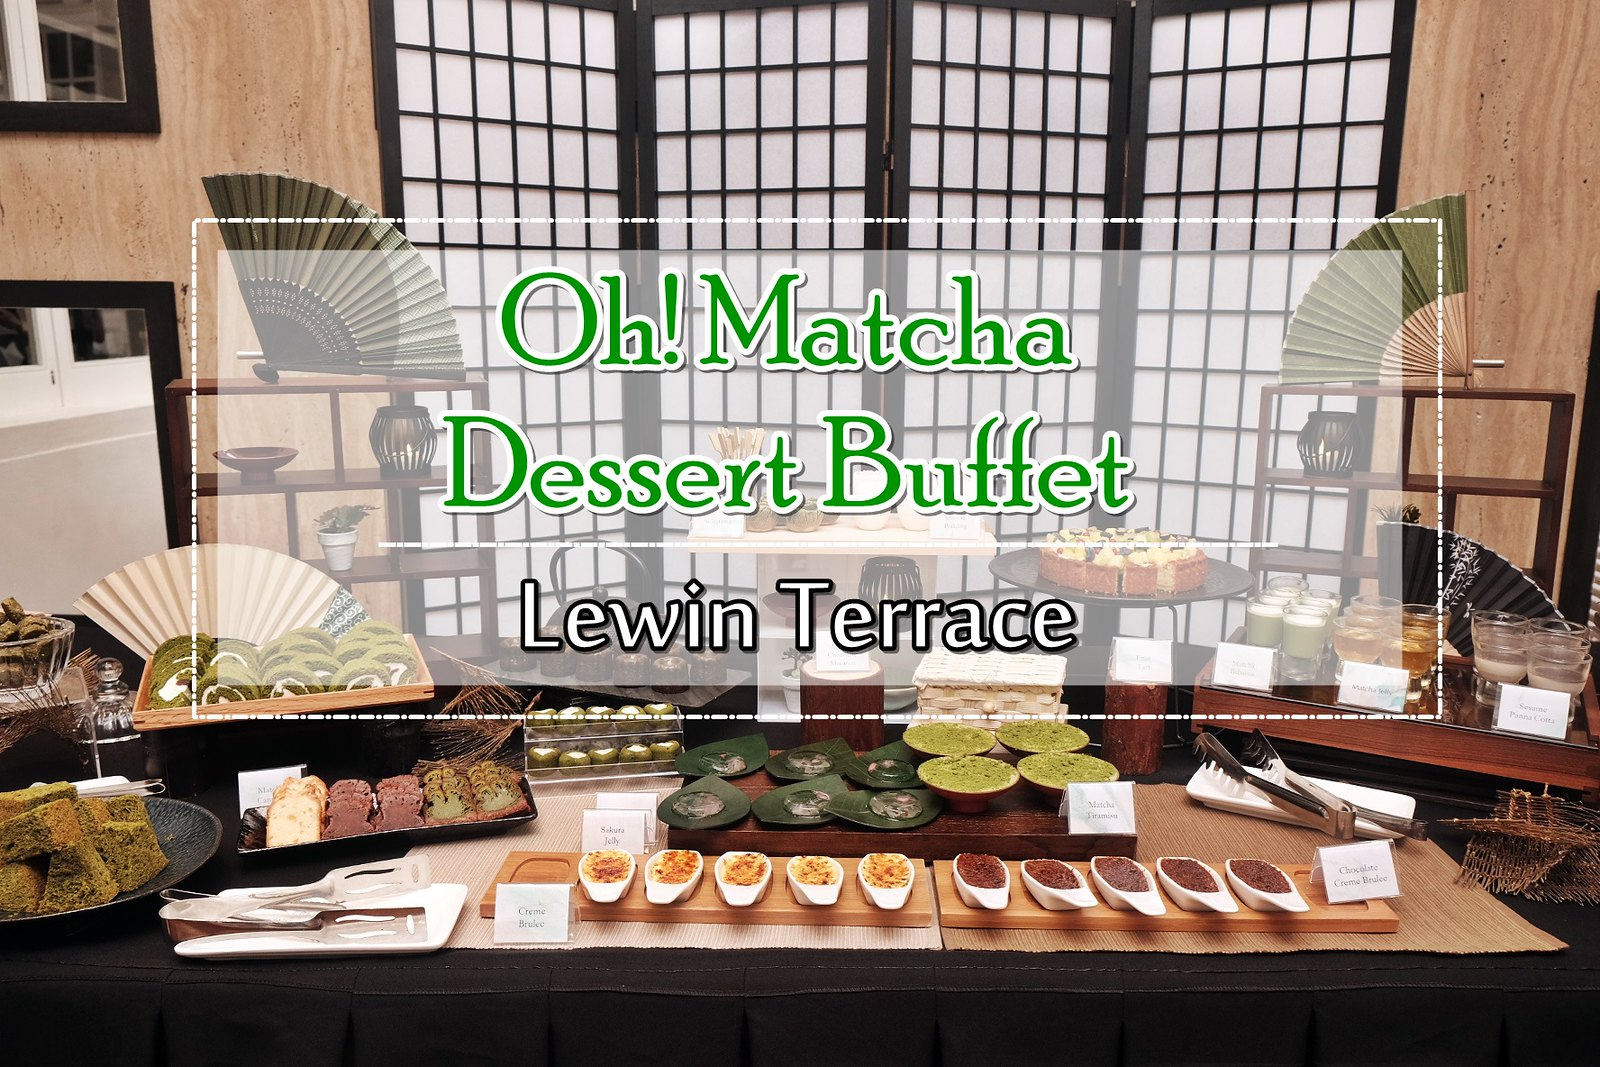 [SG EATS] Oh! Matcha Dessert Buffet At Lewin Terrace- For Matcha Fanatic!